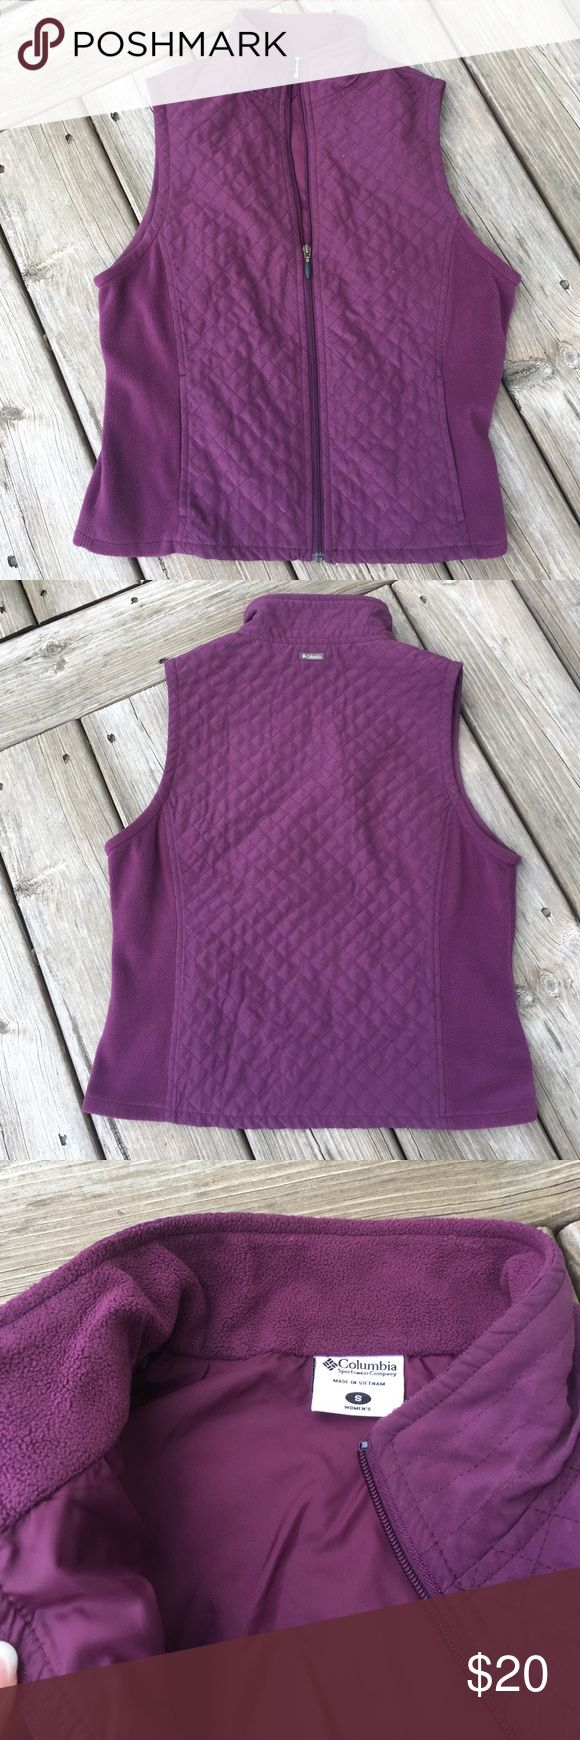 Columbia purple vest GUC. This is a great transition into spring vest.  Cute purple quilted pattern.  Sides are fleece.  No stains, holes or tears. Columbia Jackets & Coats Vests